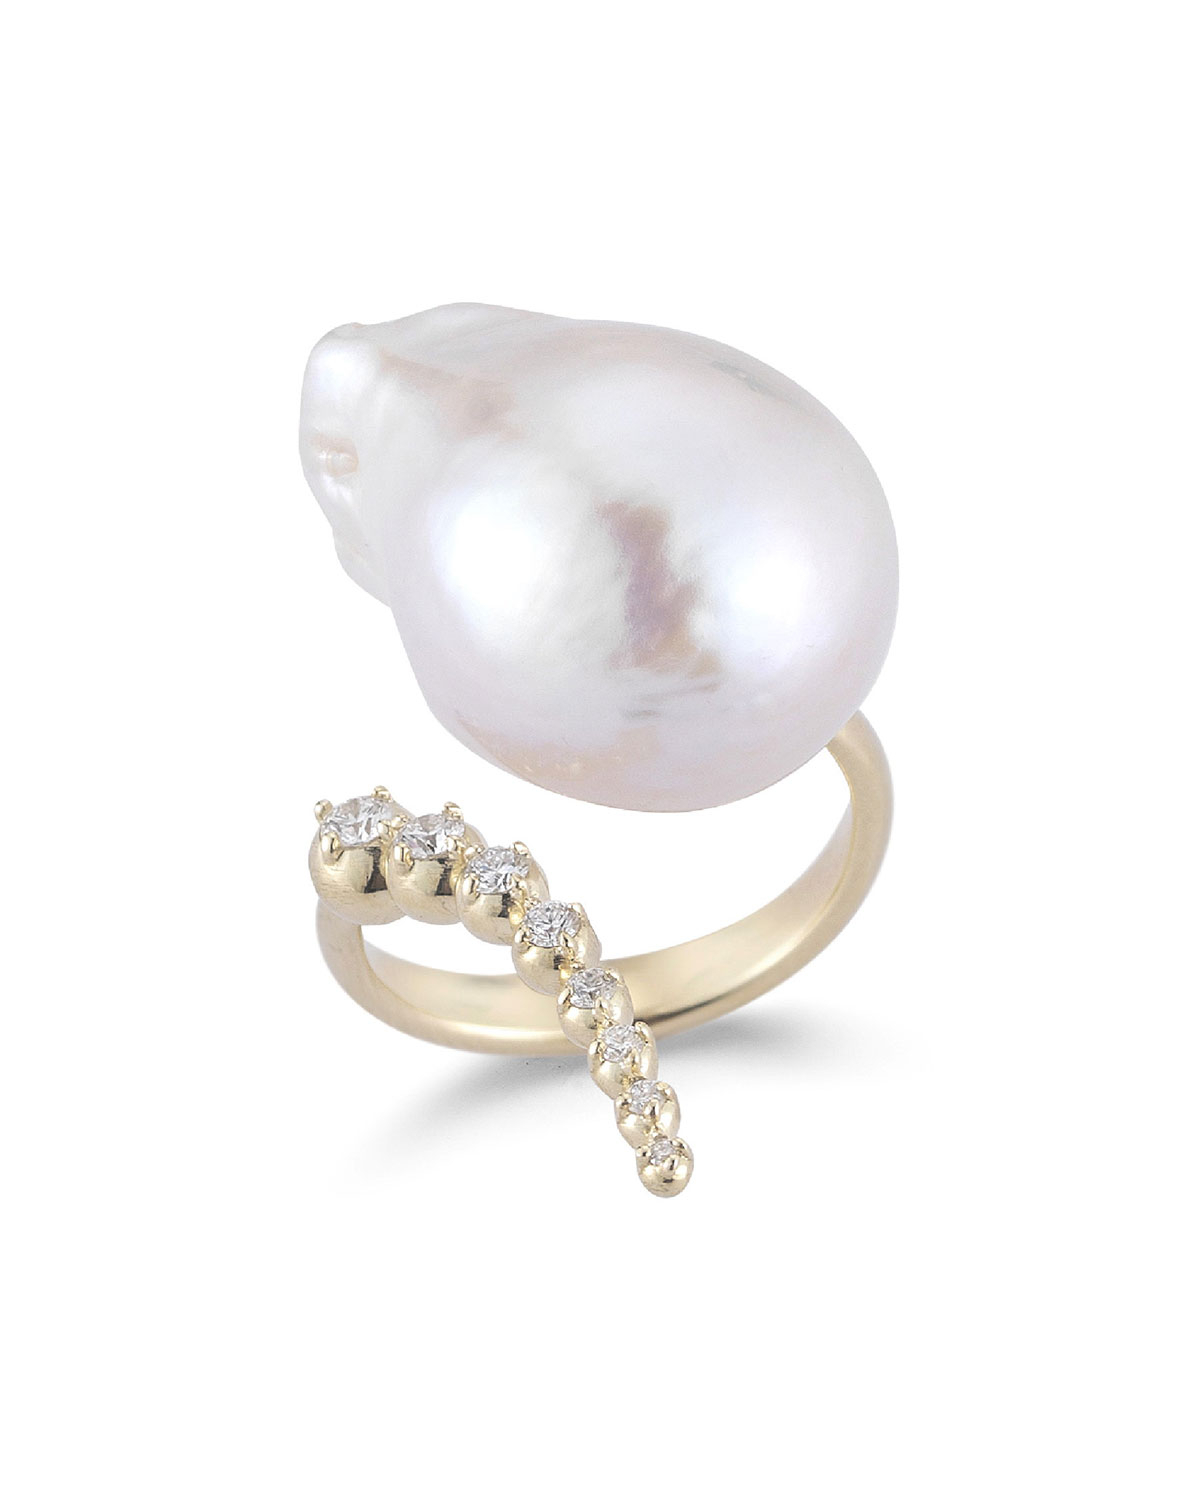 Pearl Ring Jewelry | Neiman Marcus Within Latest Bead & Freshwater Cultured Pearl Open Rings (View 17 of 25)